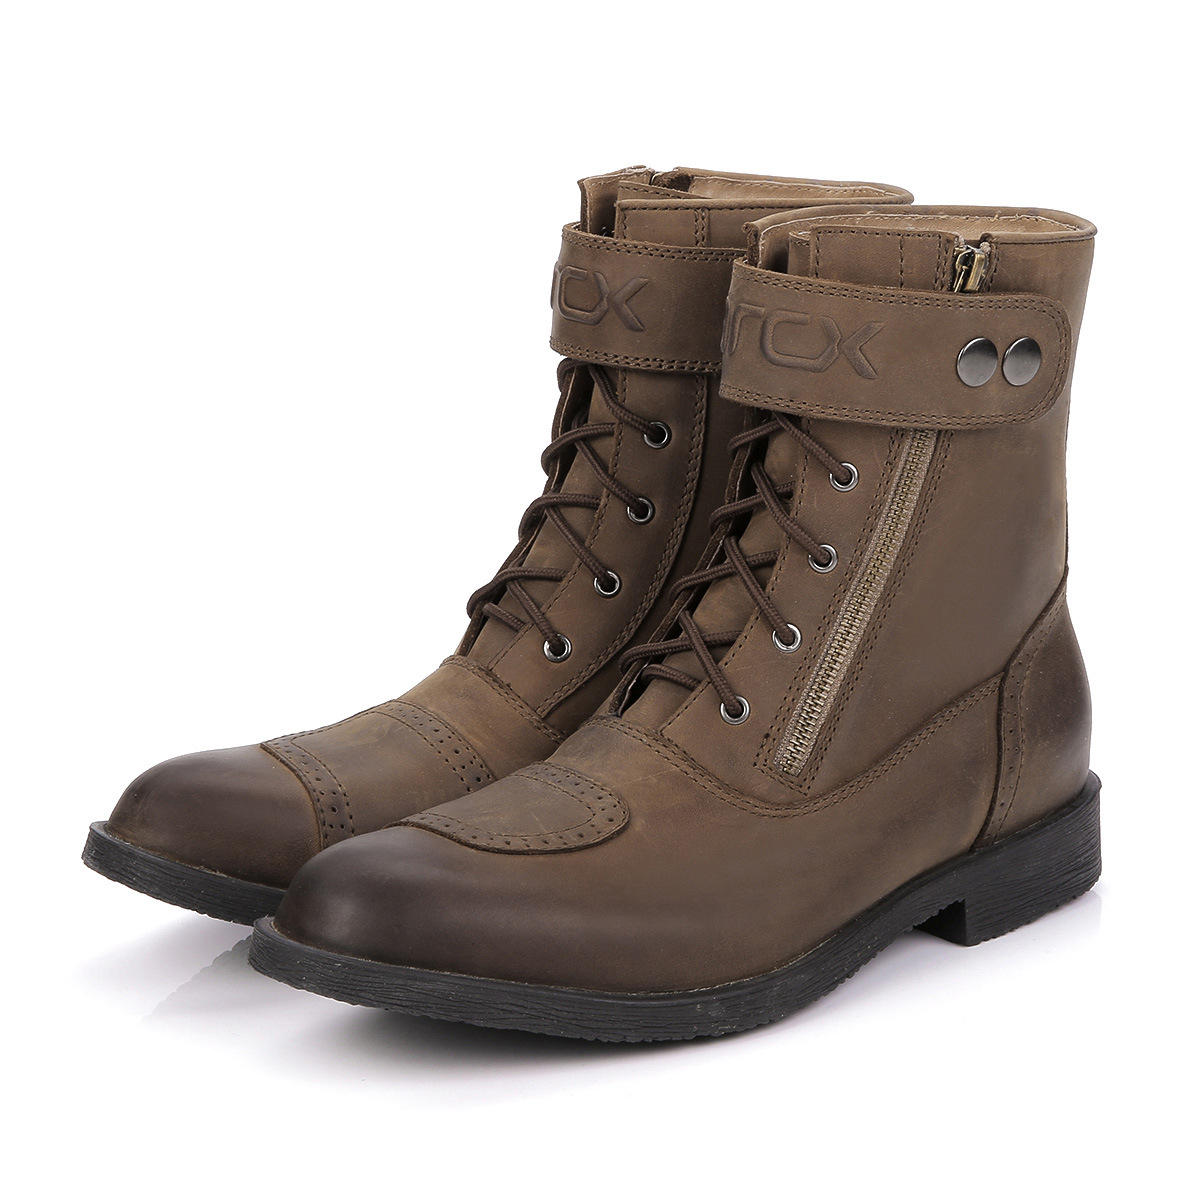 Cow Leather Motorcycle Leisure Pointed Shoes Riding Boots ARCX